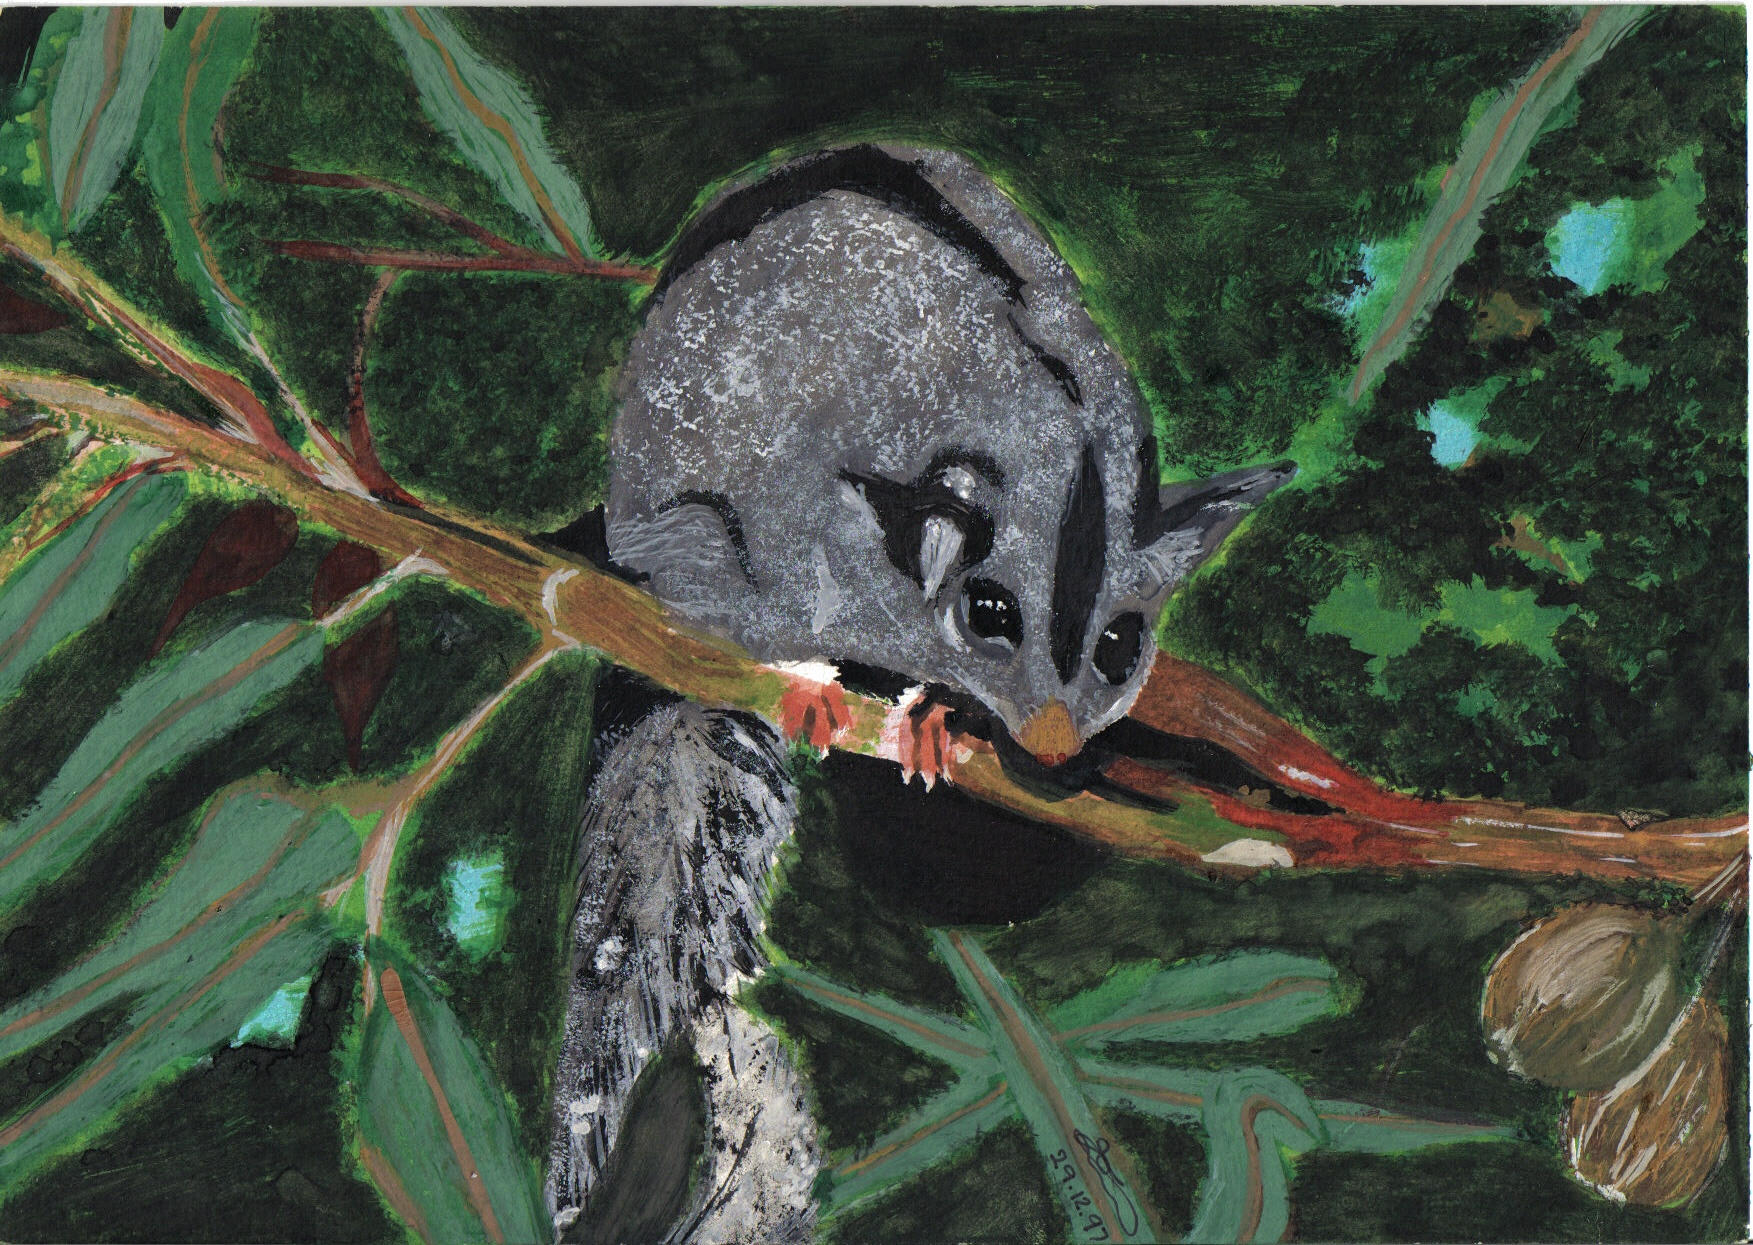 Painting of a possum I did in a tree at our house